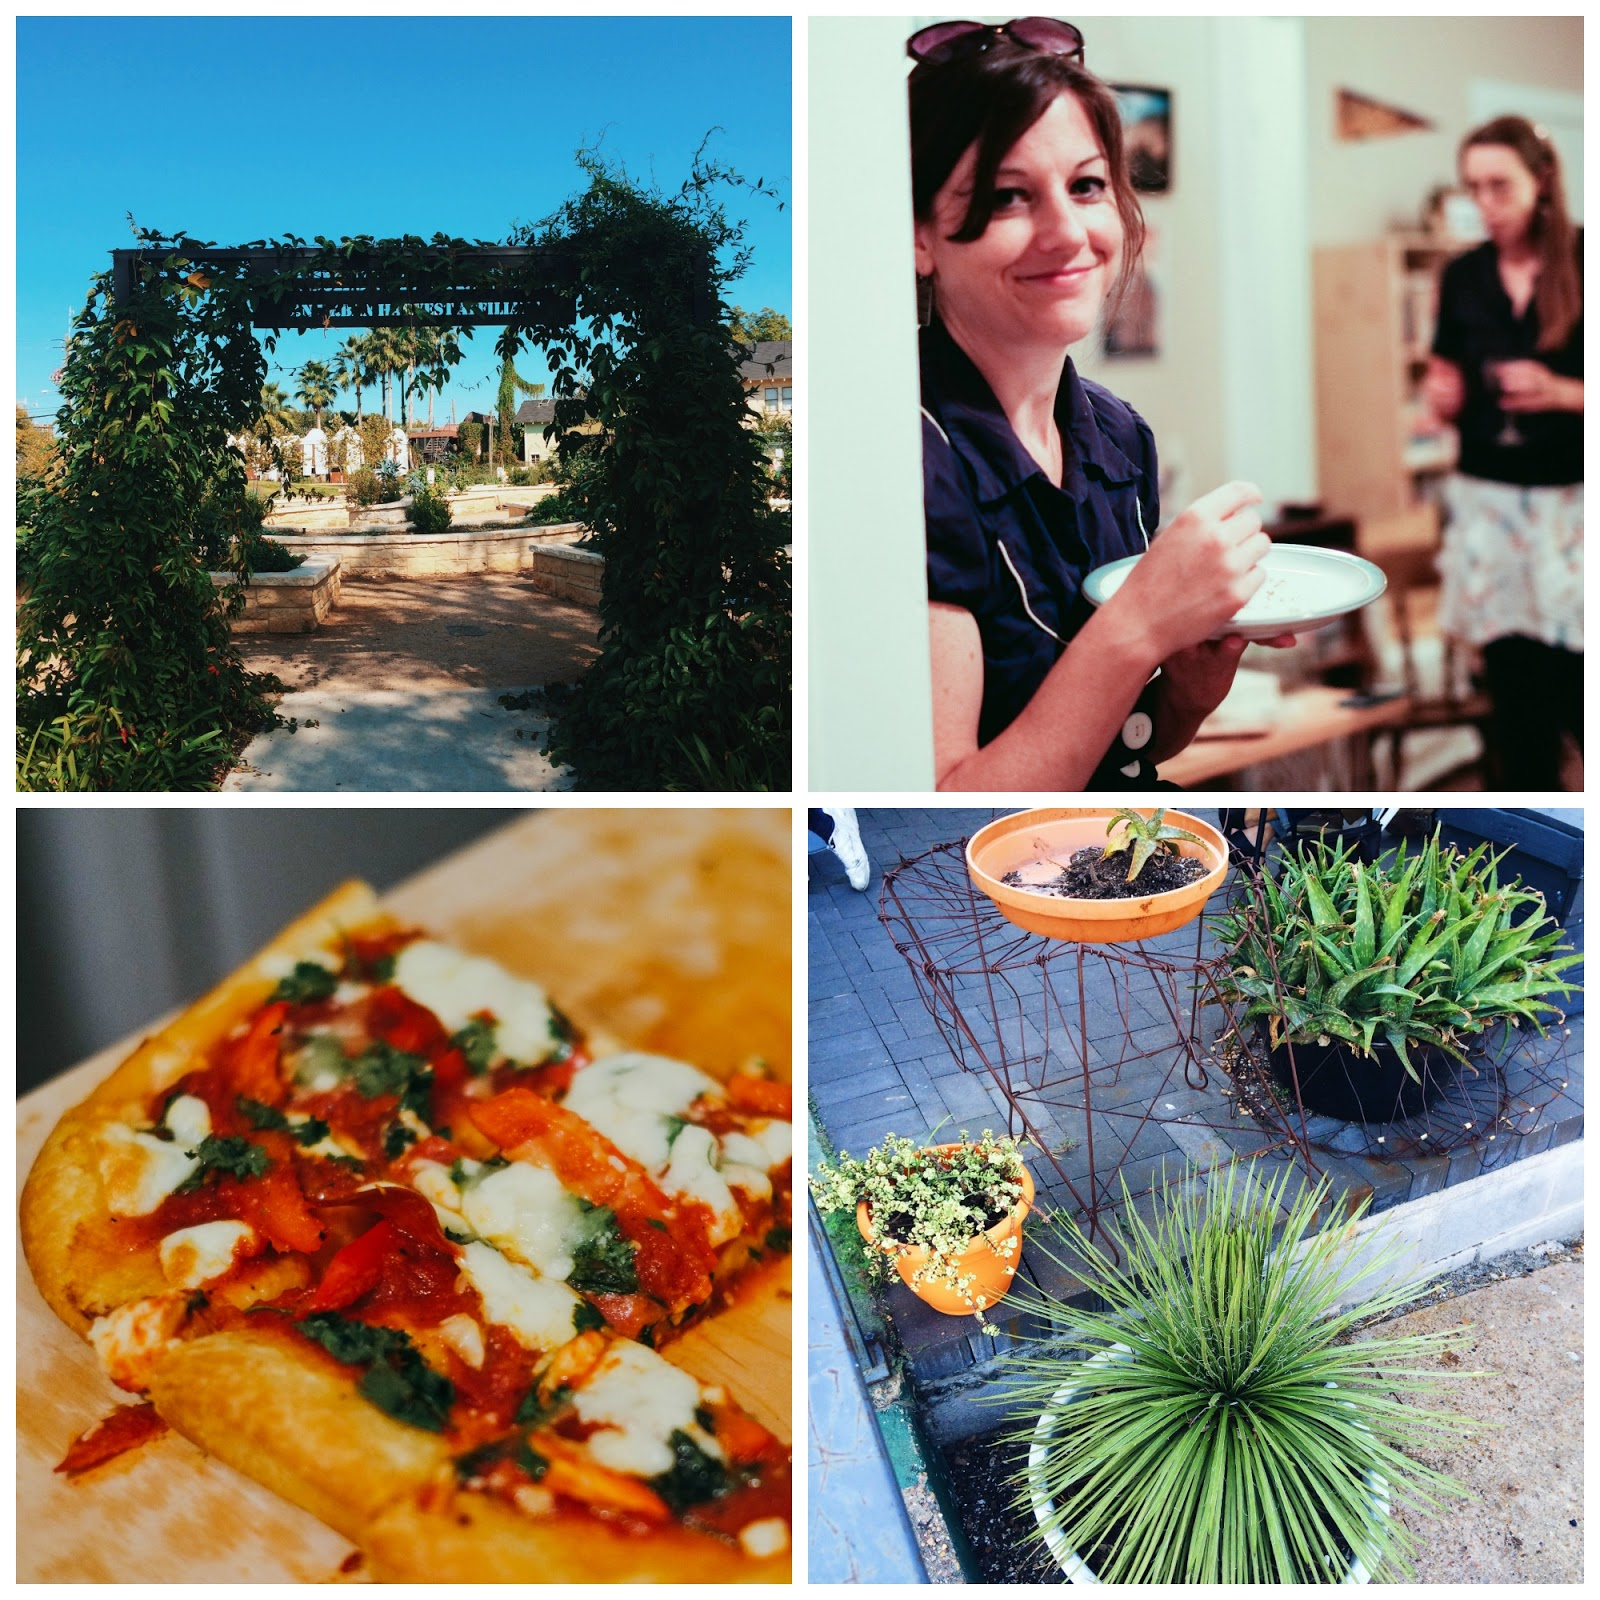 Mandell Park, Pizza Night, Black Hole Coffee House